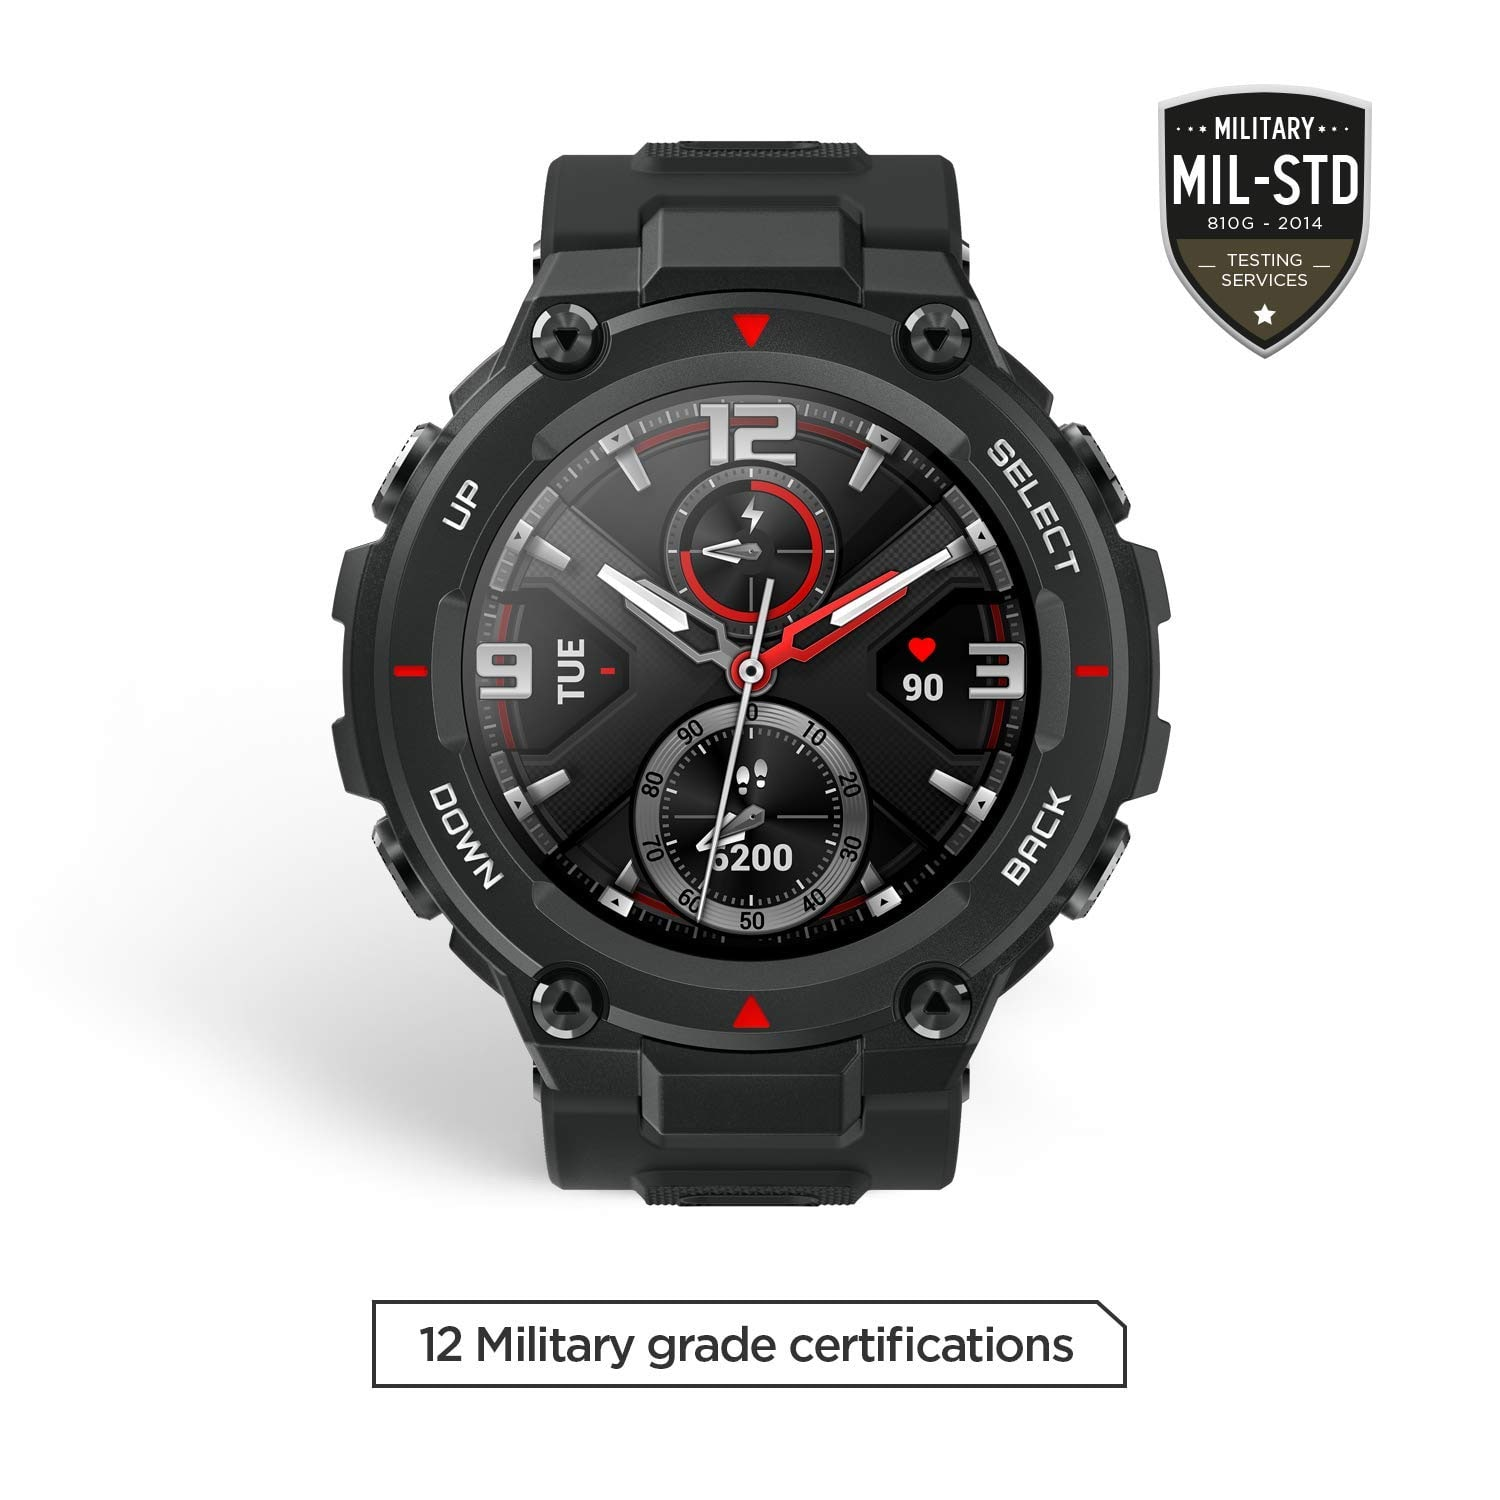 $111.99 shipped Amazfit T-Rex Smartwatch, Military Standard Certified, Tough Body, GPS, 20-Day Battery Life, 1.3'' AMOLED Display, Water Resistant, 14-Sports Modes